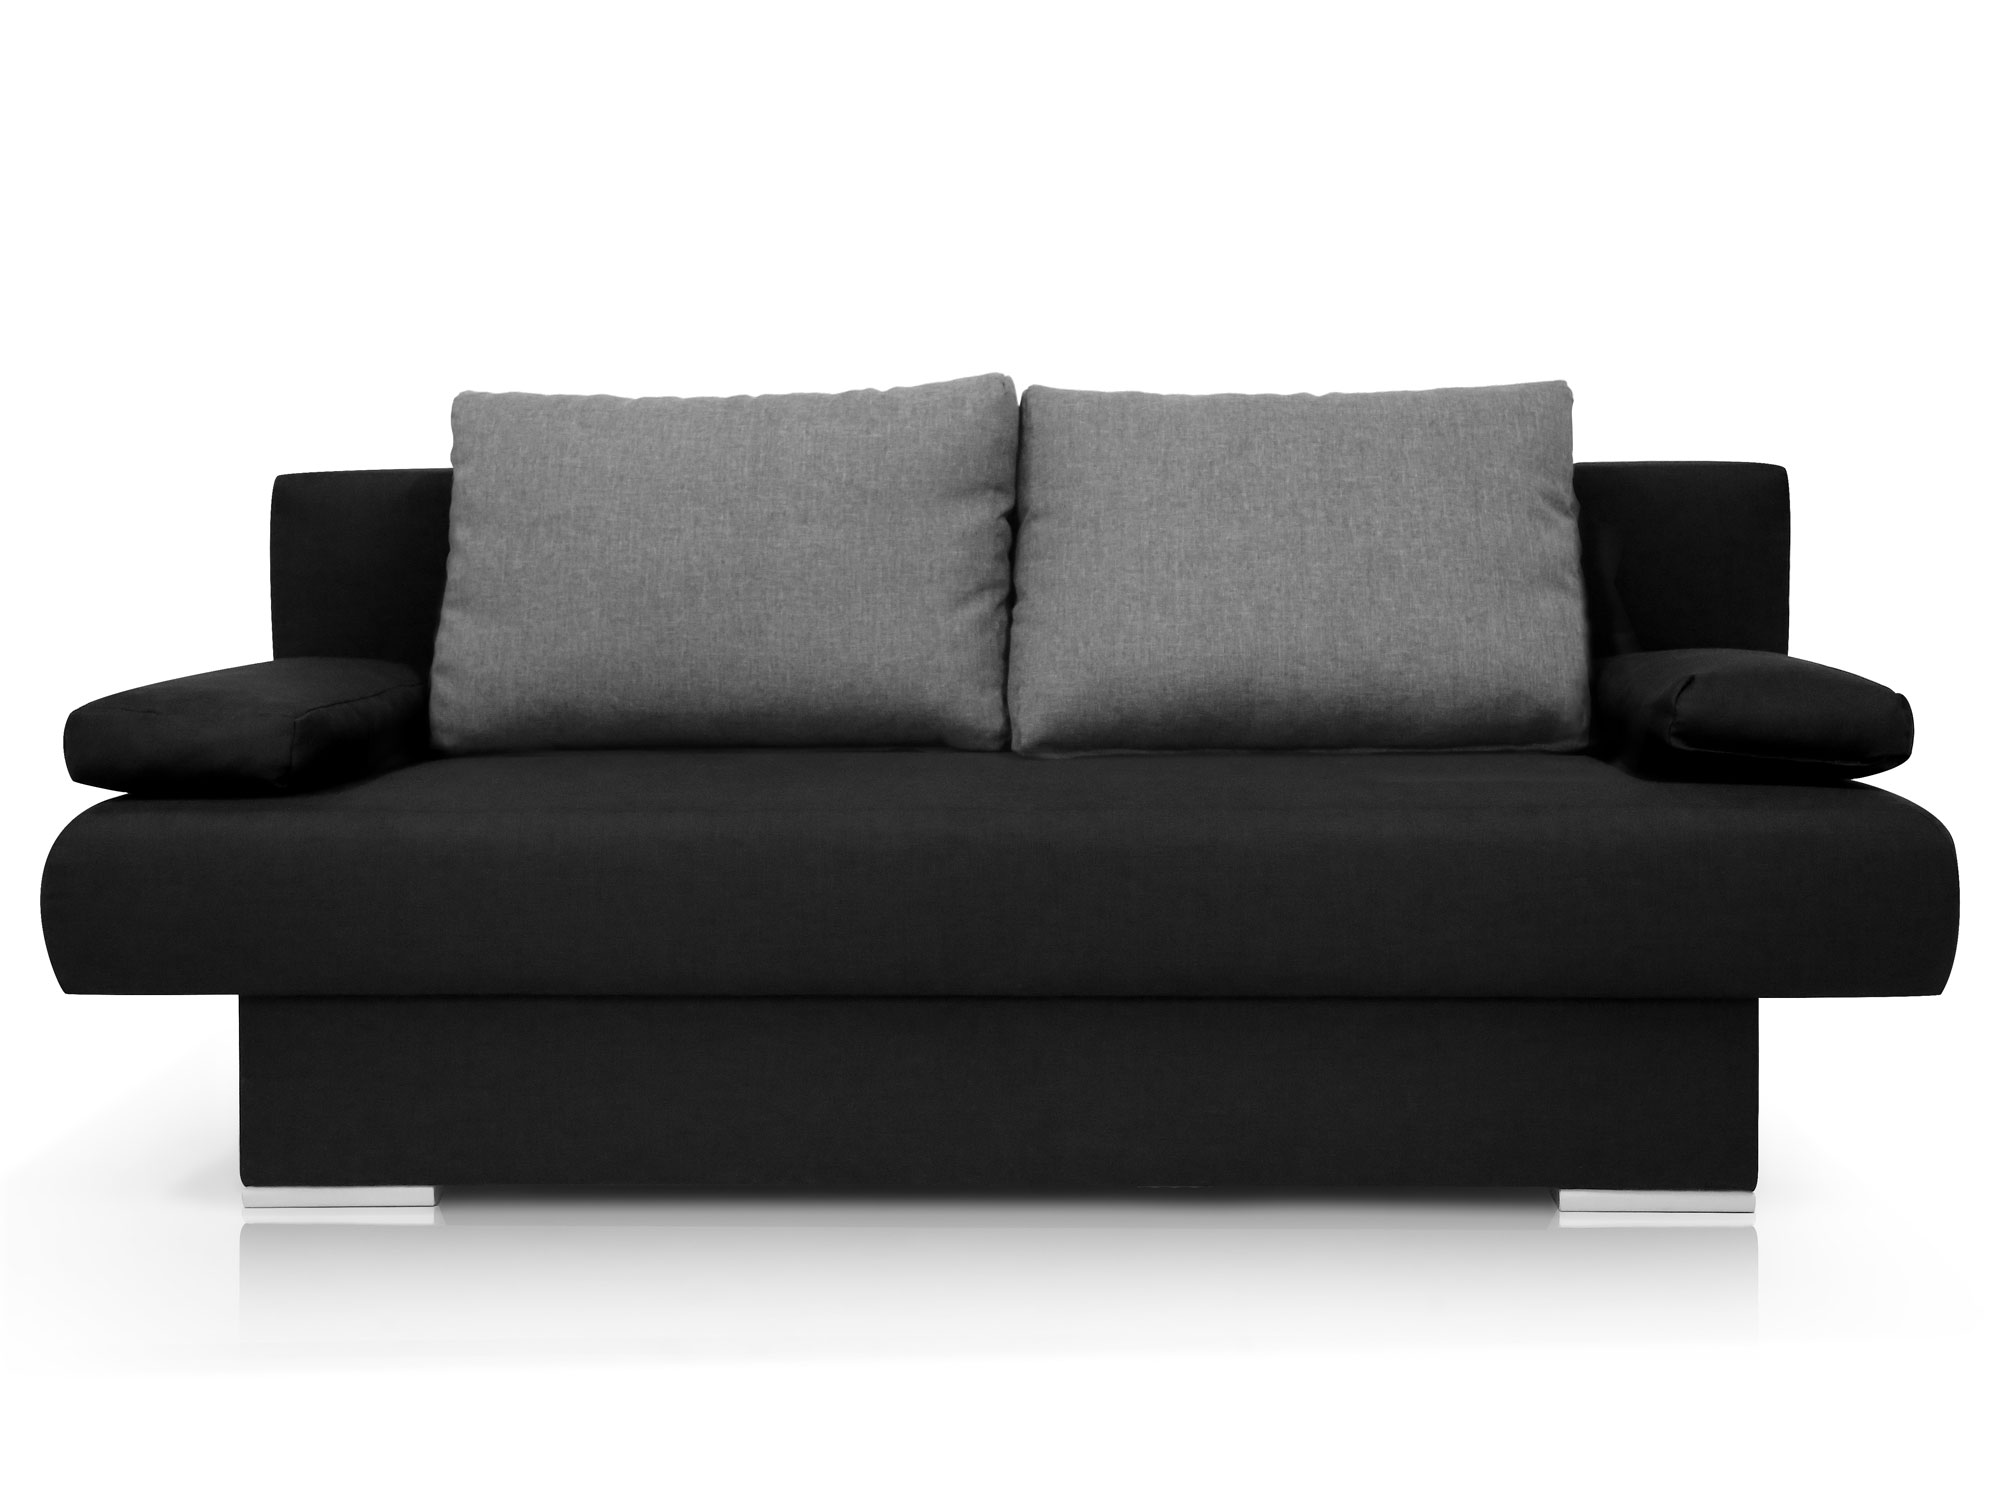 mike schlafsofa schlafcouch schwarz kissen anthrazit. Black Bedroom Furniture Sets. Home Design Ideas